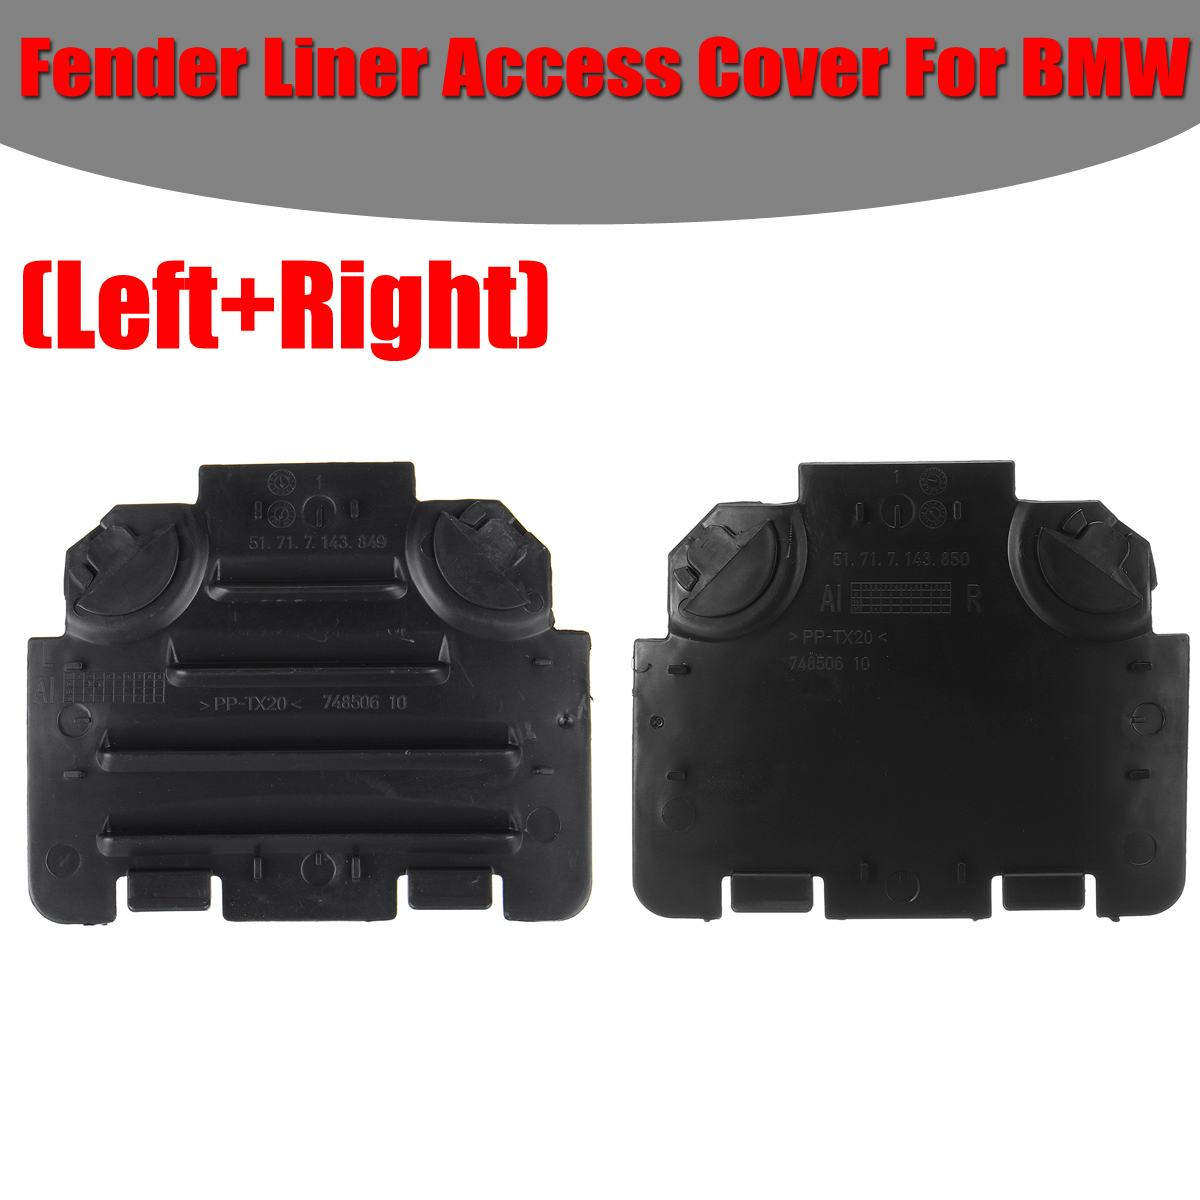 Left/Right Car Front For Fender Liner Access Cover Trim For <font><b>BMW</b></font> <font><b>E82</b></font> E88 E90 E91 <font><b>135i</b></font> 325i 51717143849 51717143850 image